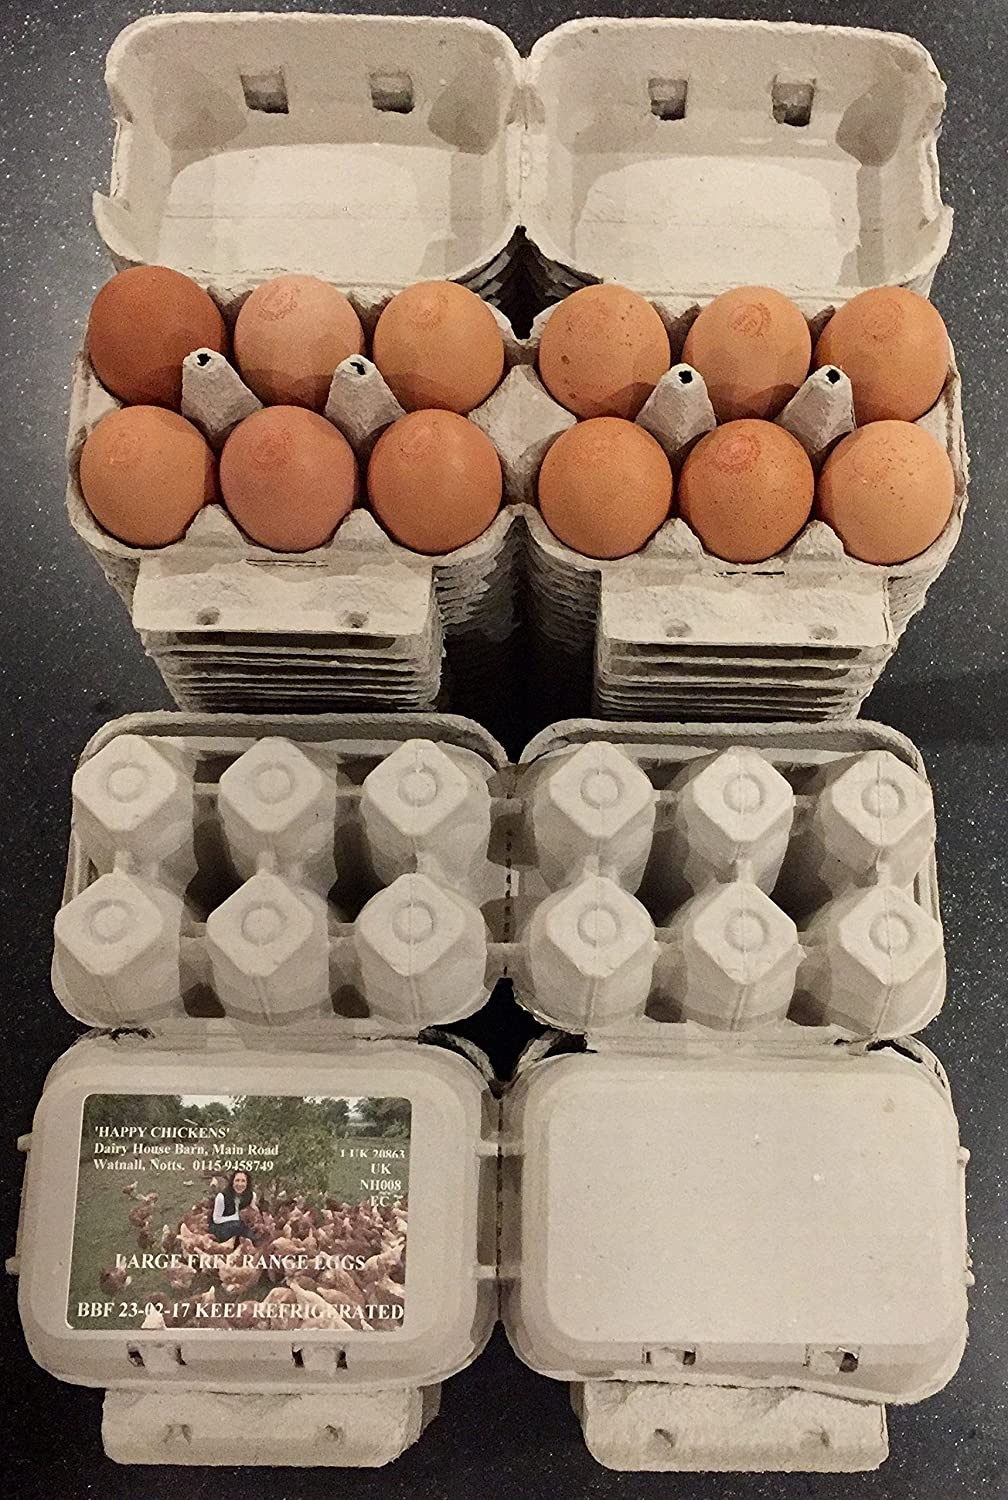 100 HALF DOZEN ECONOMY 'FLAT TOP' EGG BOXES SUITABLE FOR LABELS UP TO LRG EGGS HAPPY CHICKENS